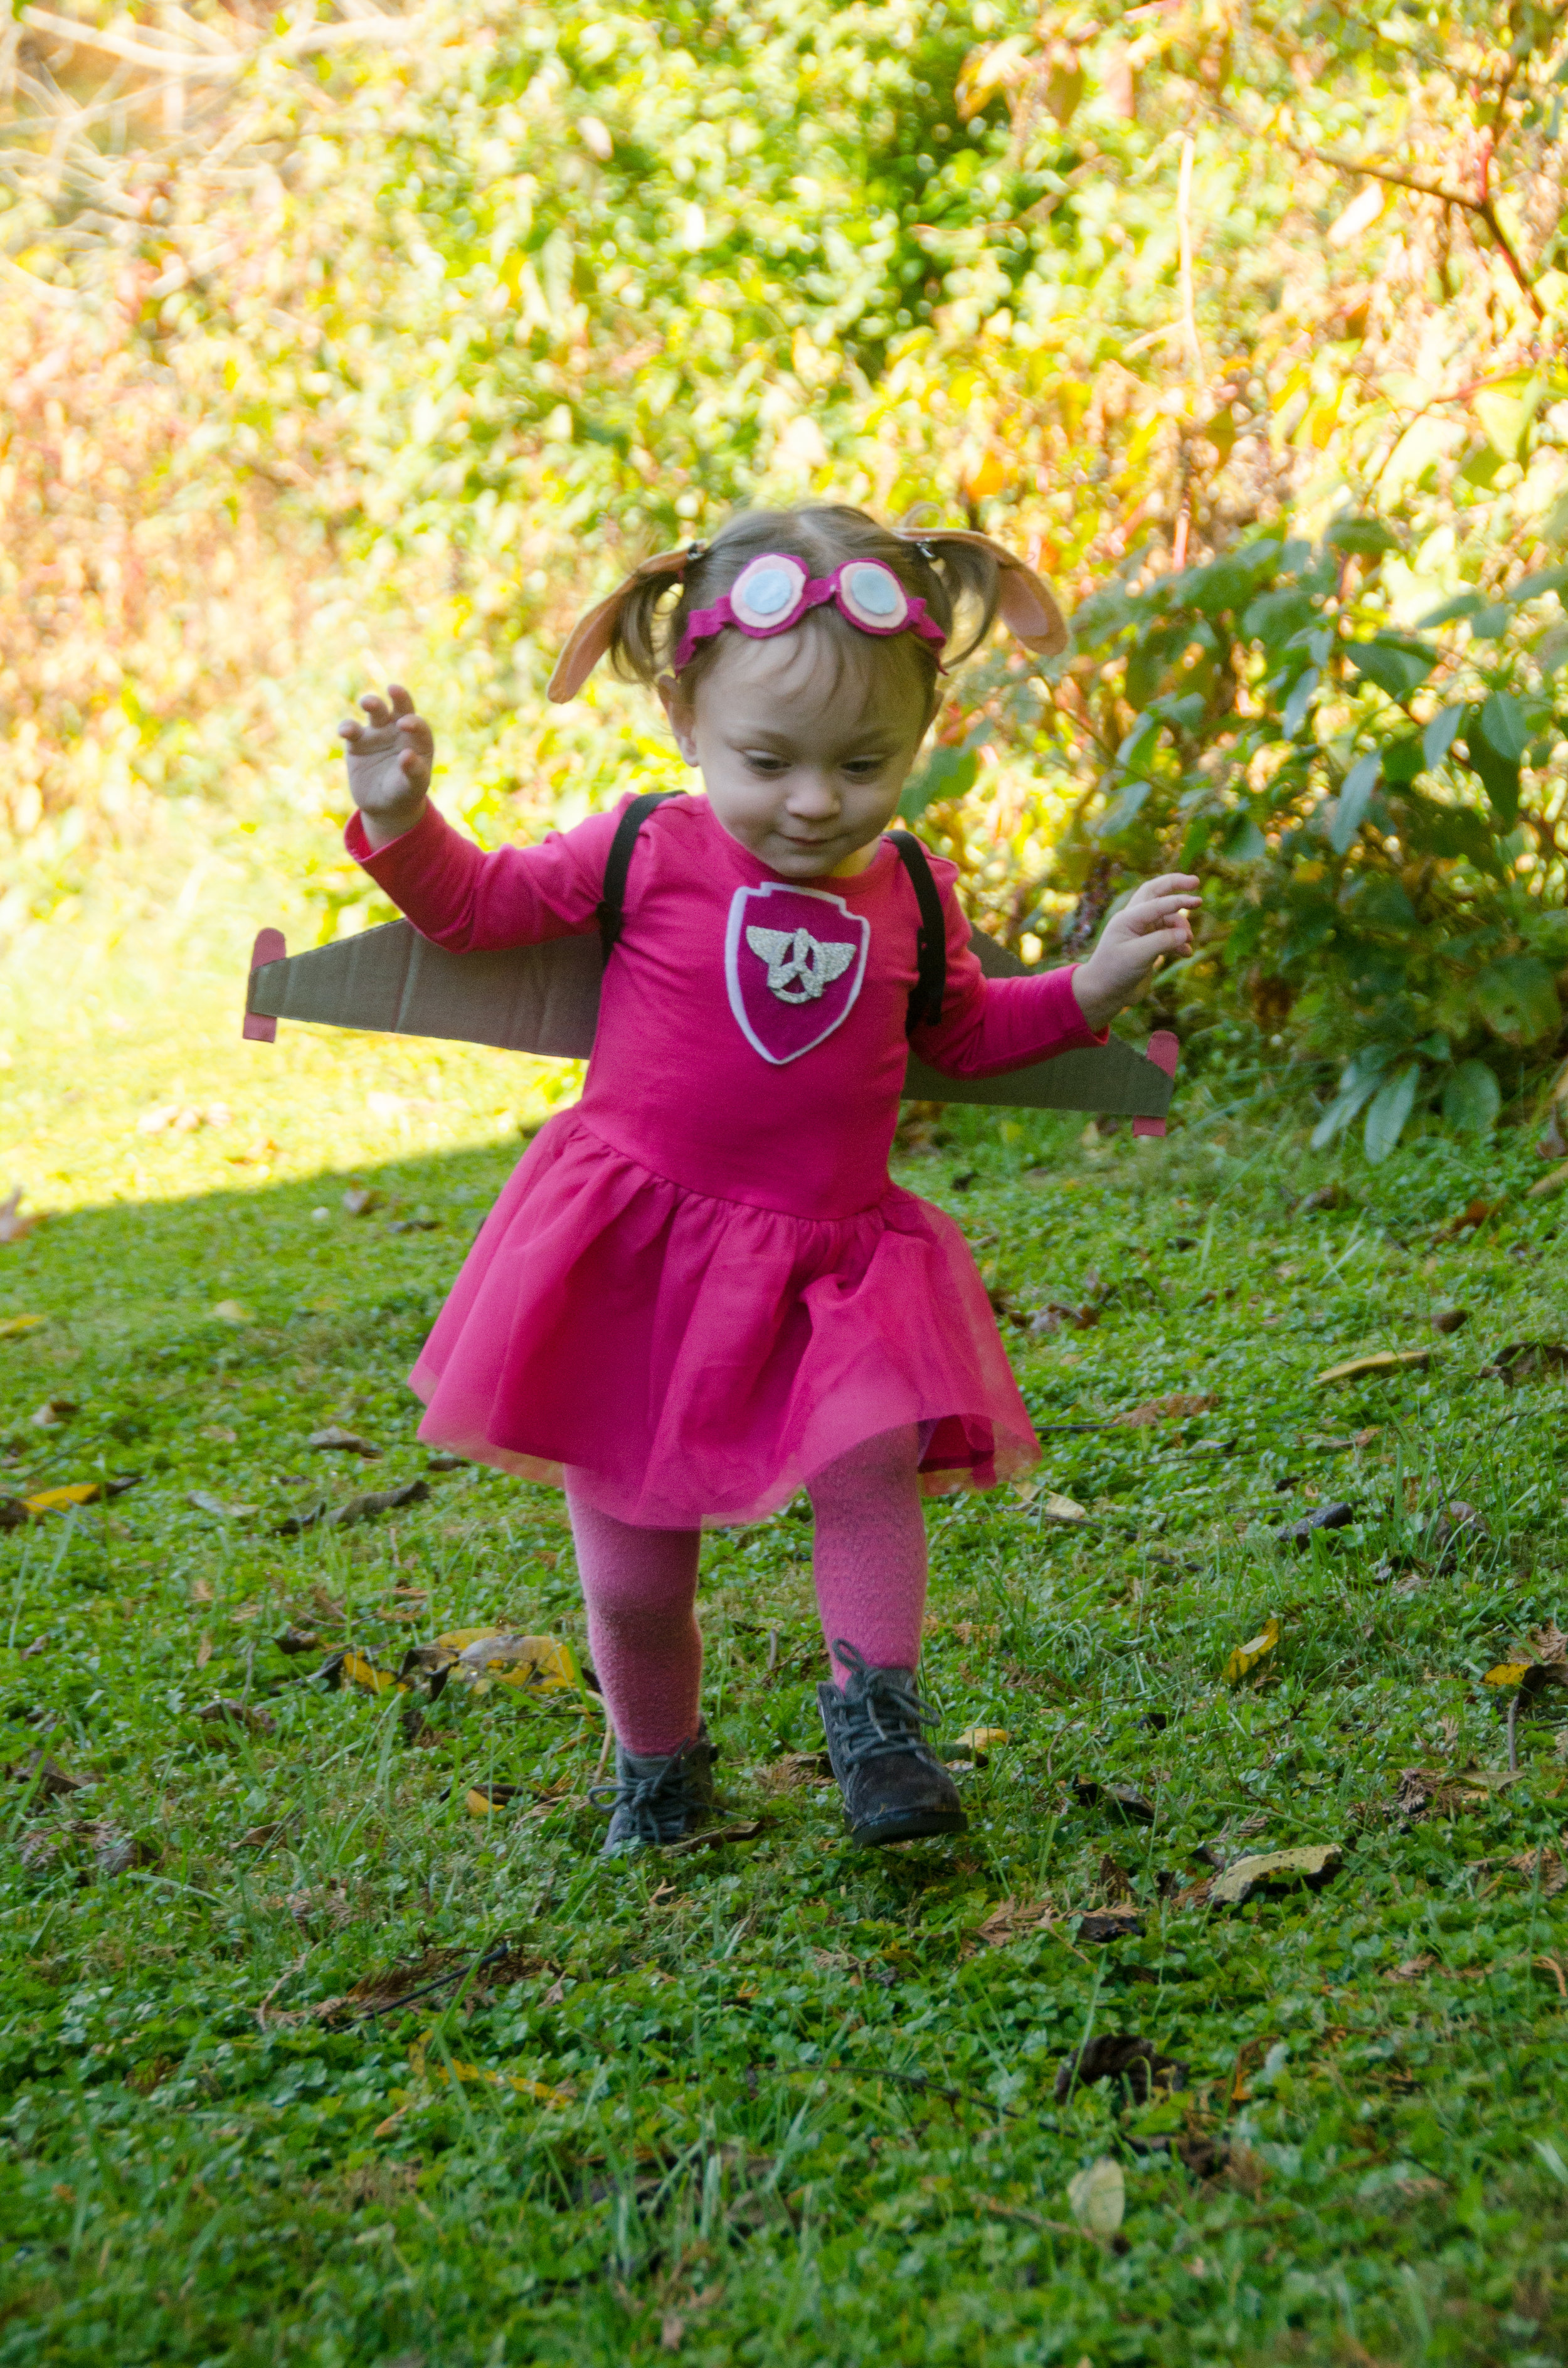 addie belle - 2 years old - october 2017 - shegotguts.com-7.jpg